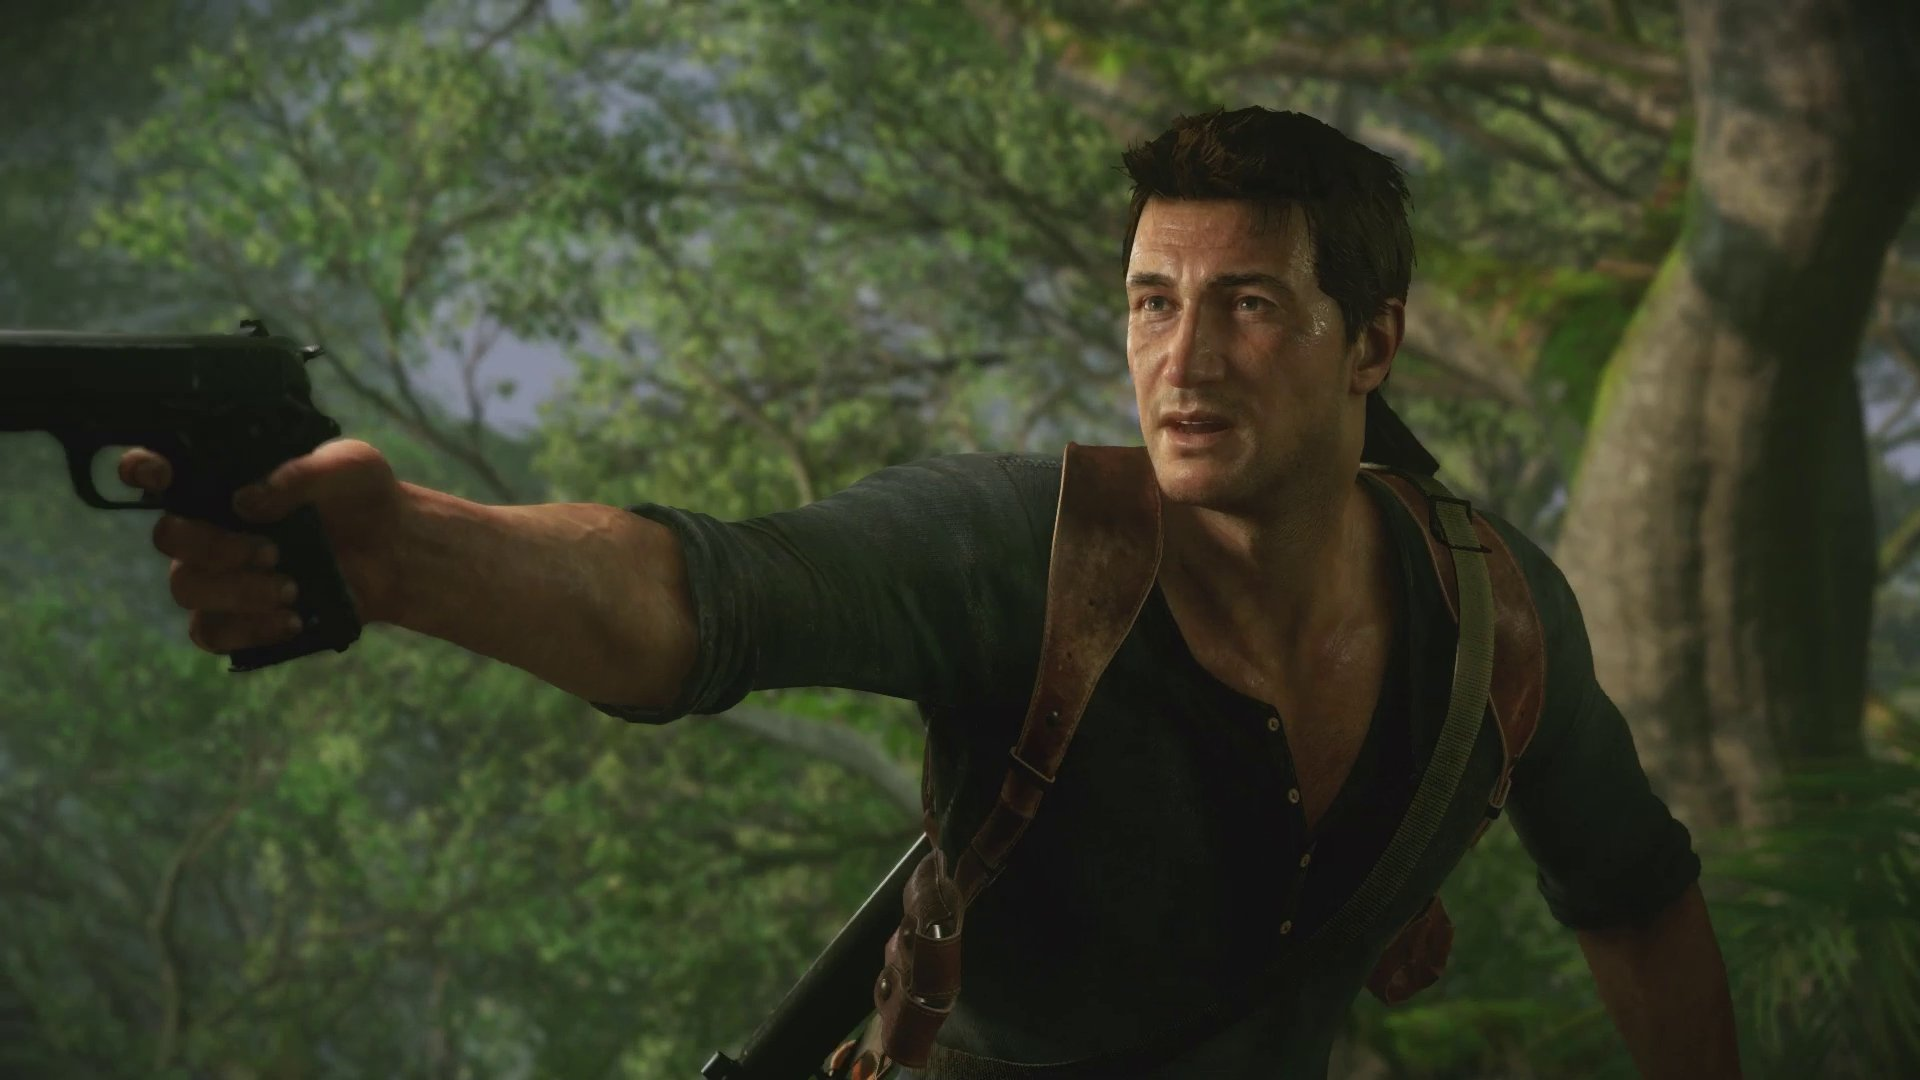 Uncharted 4 Multiplayer Stress Test Starts This Weekend